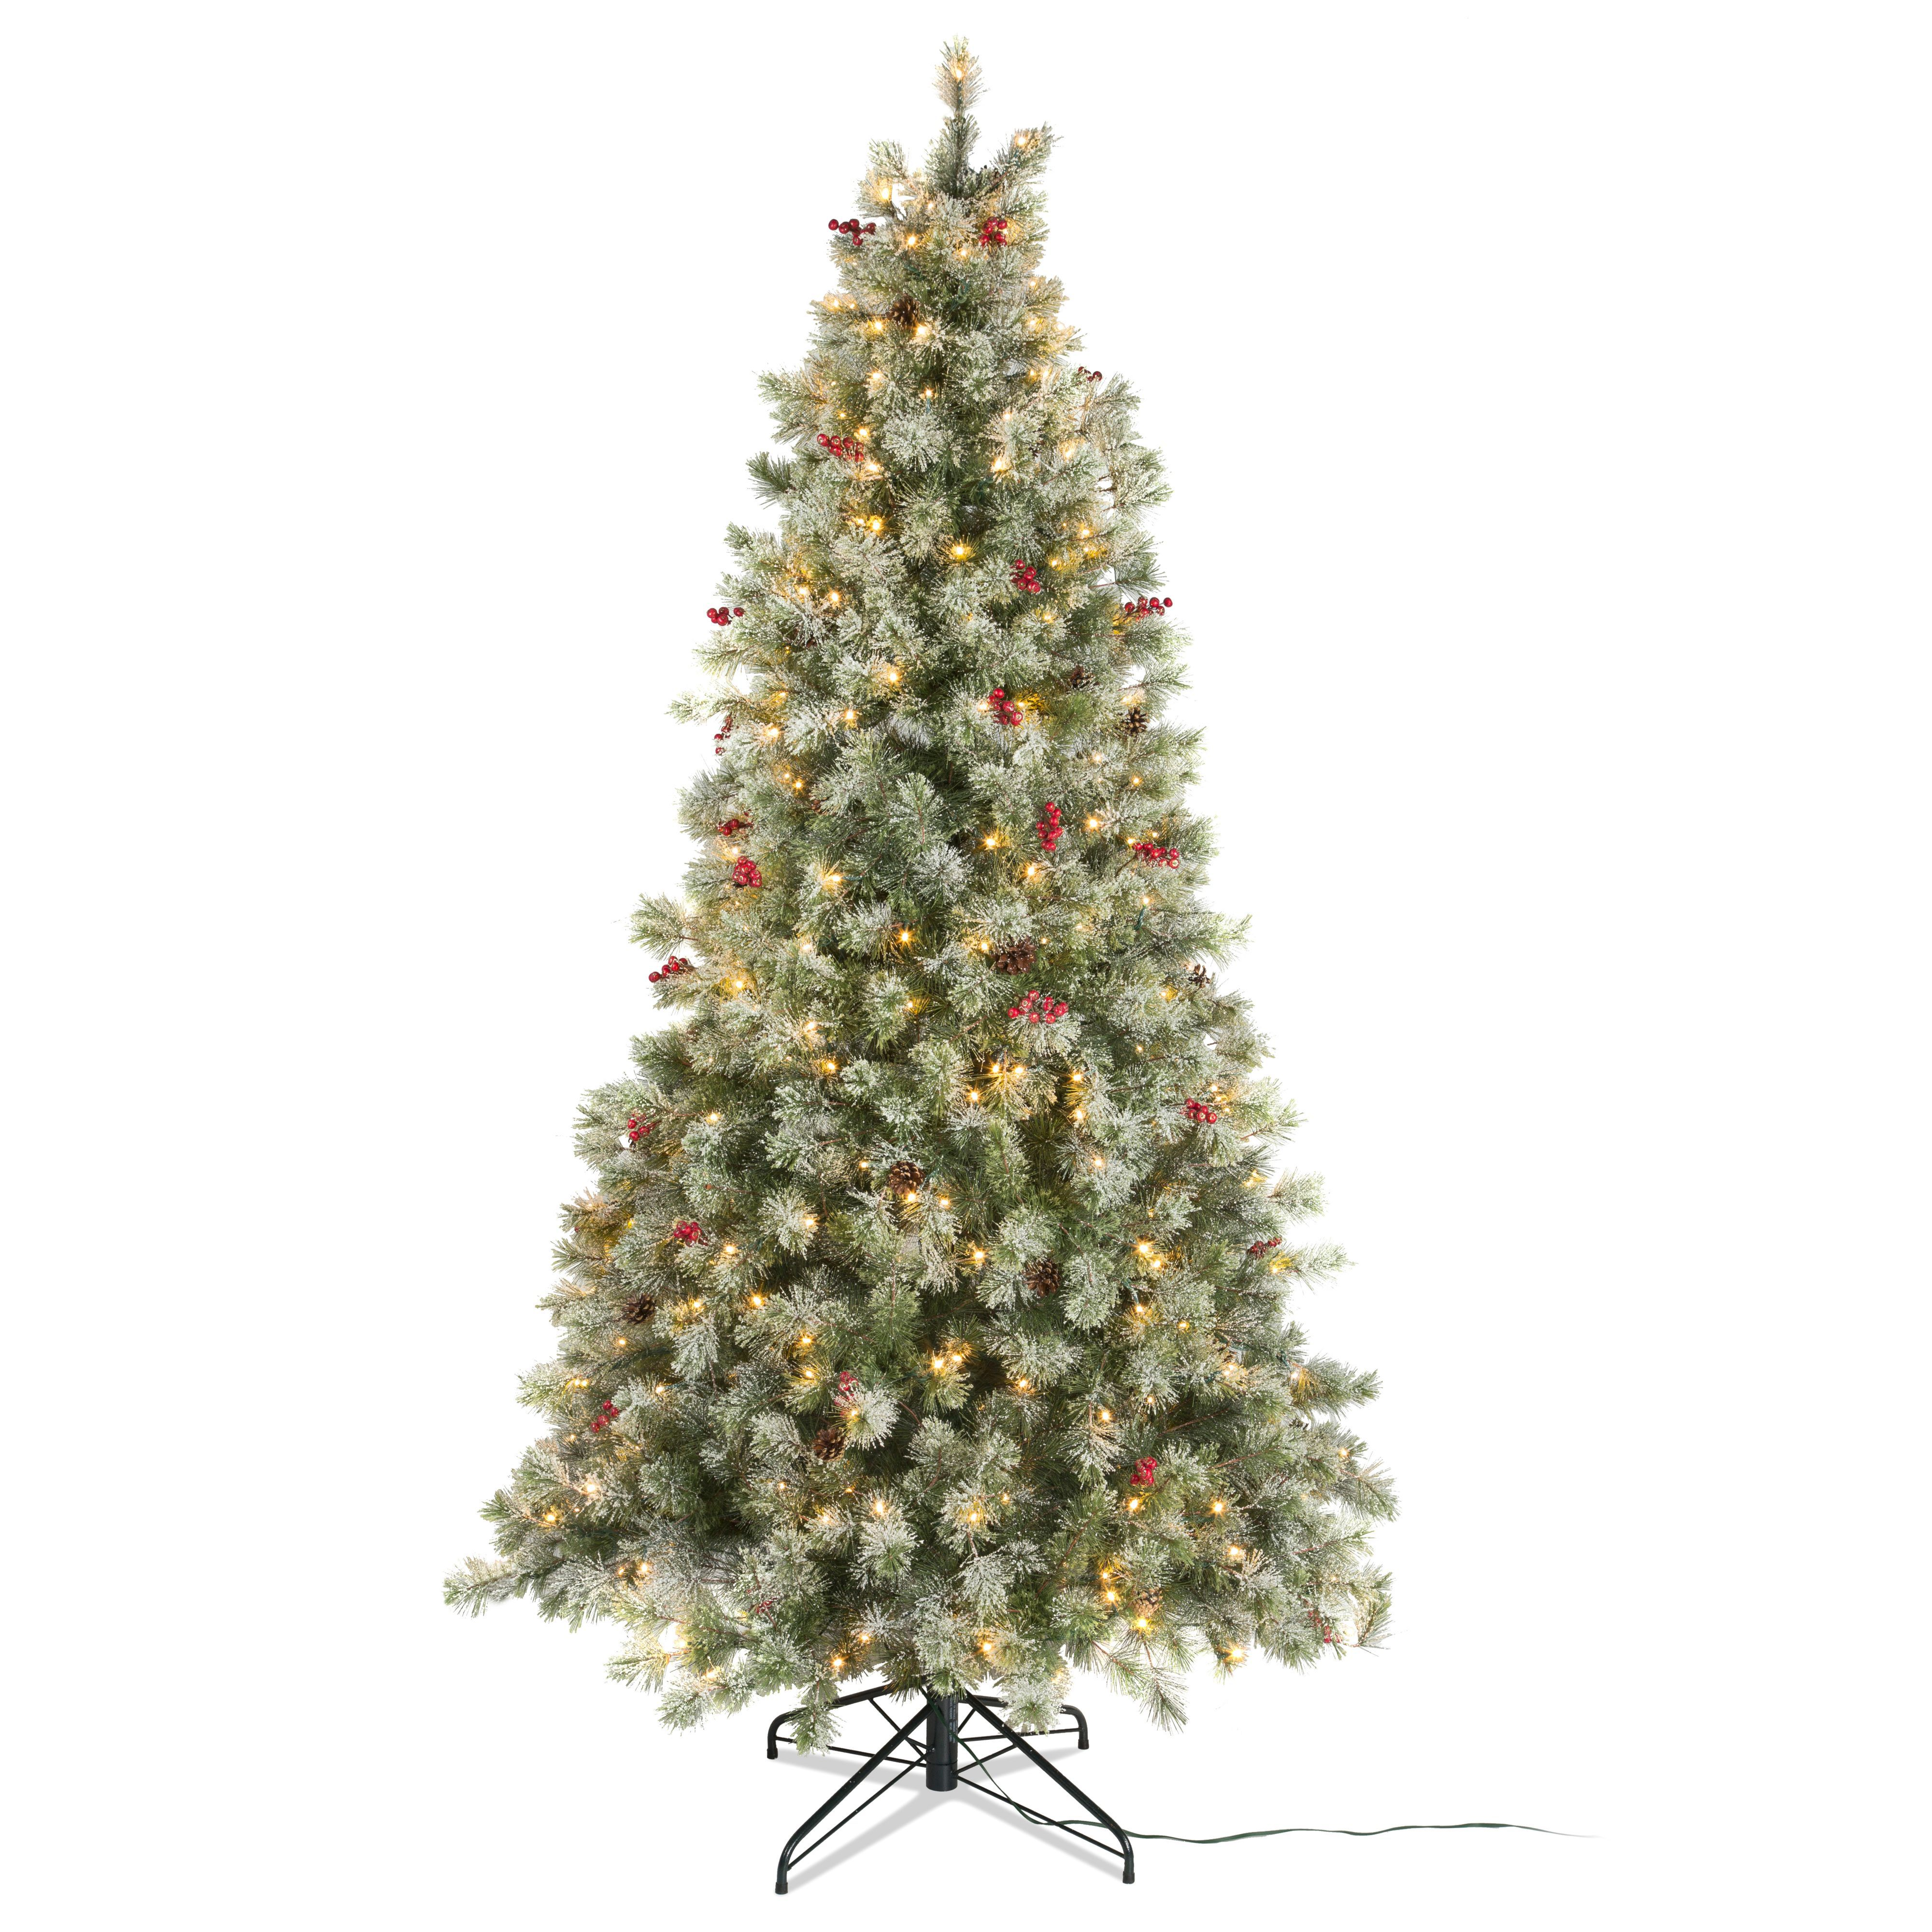 7ft 6In Fairview Pre Lit LED Christmas Tree